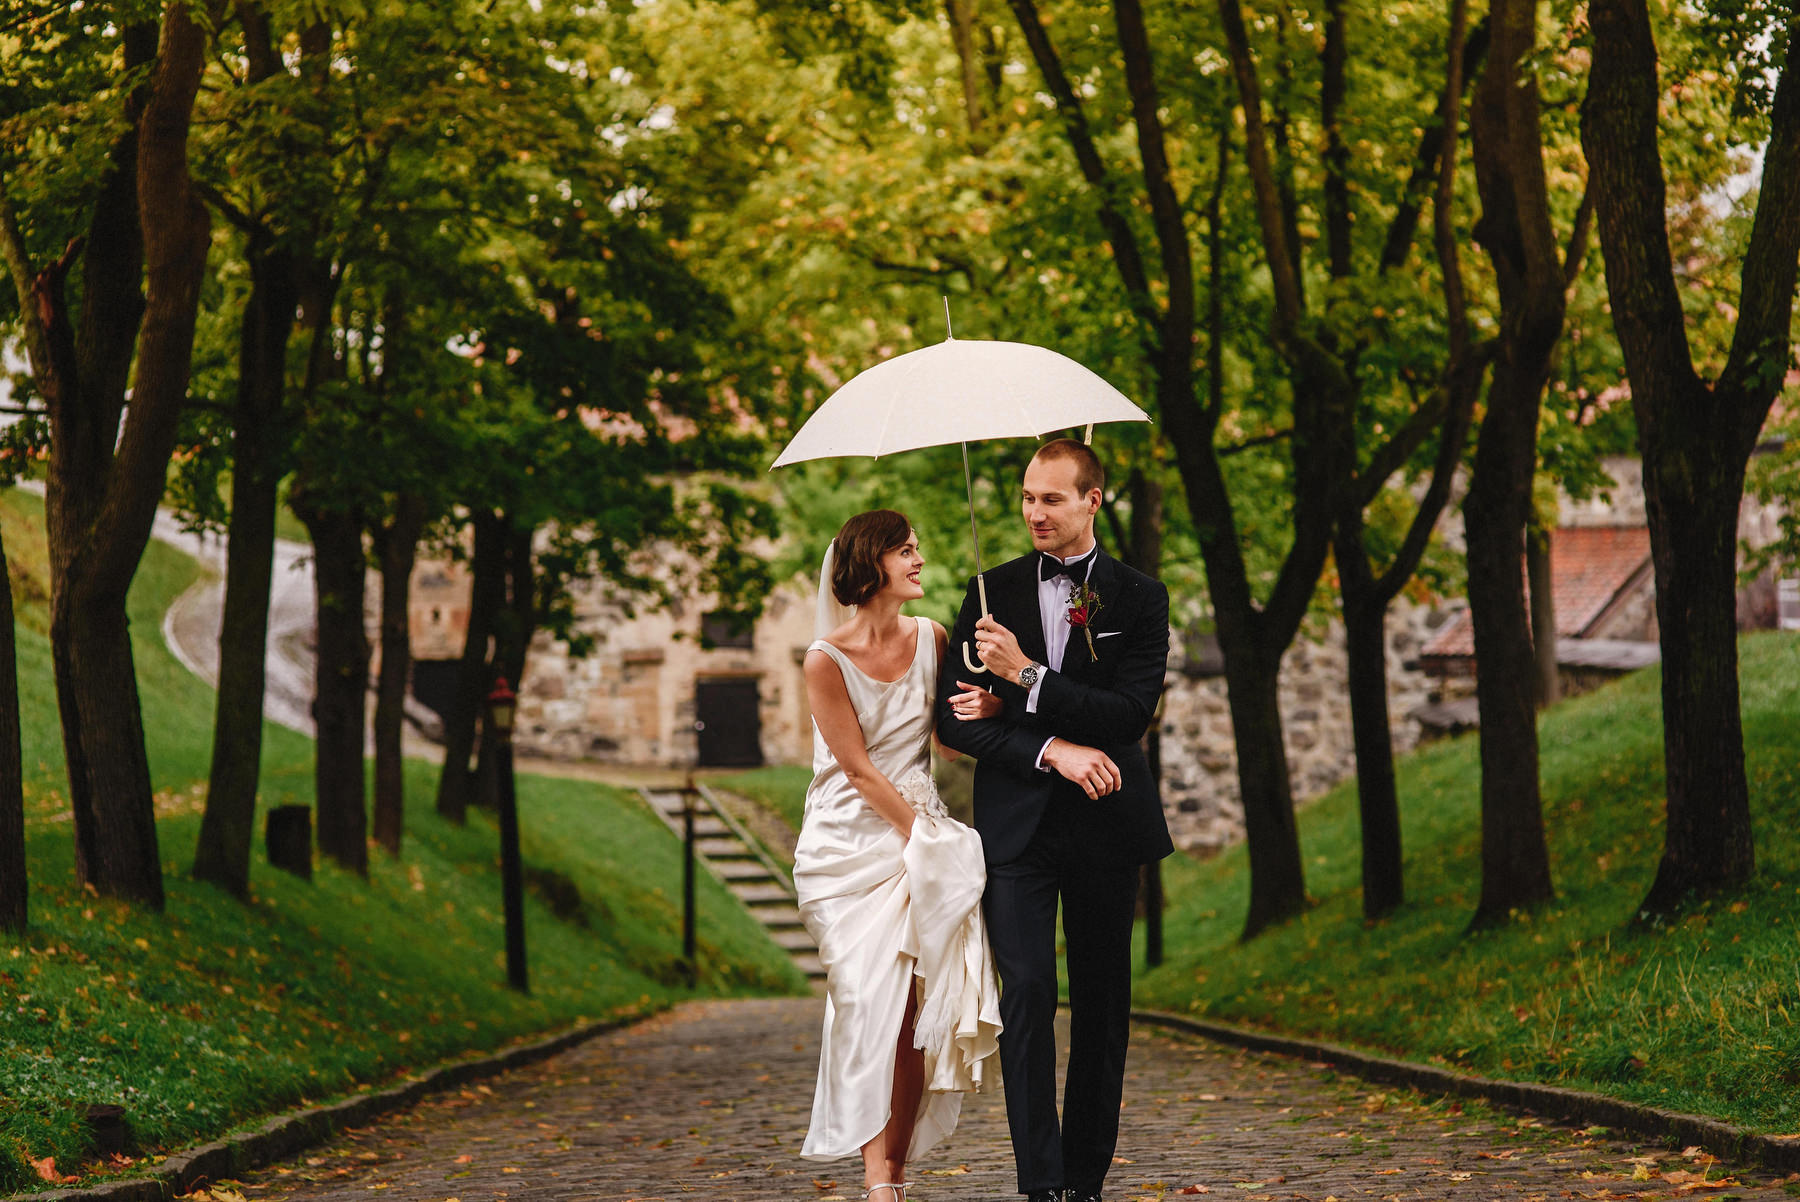 Akershus Festning Wedding Photographer